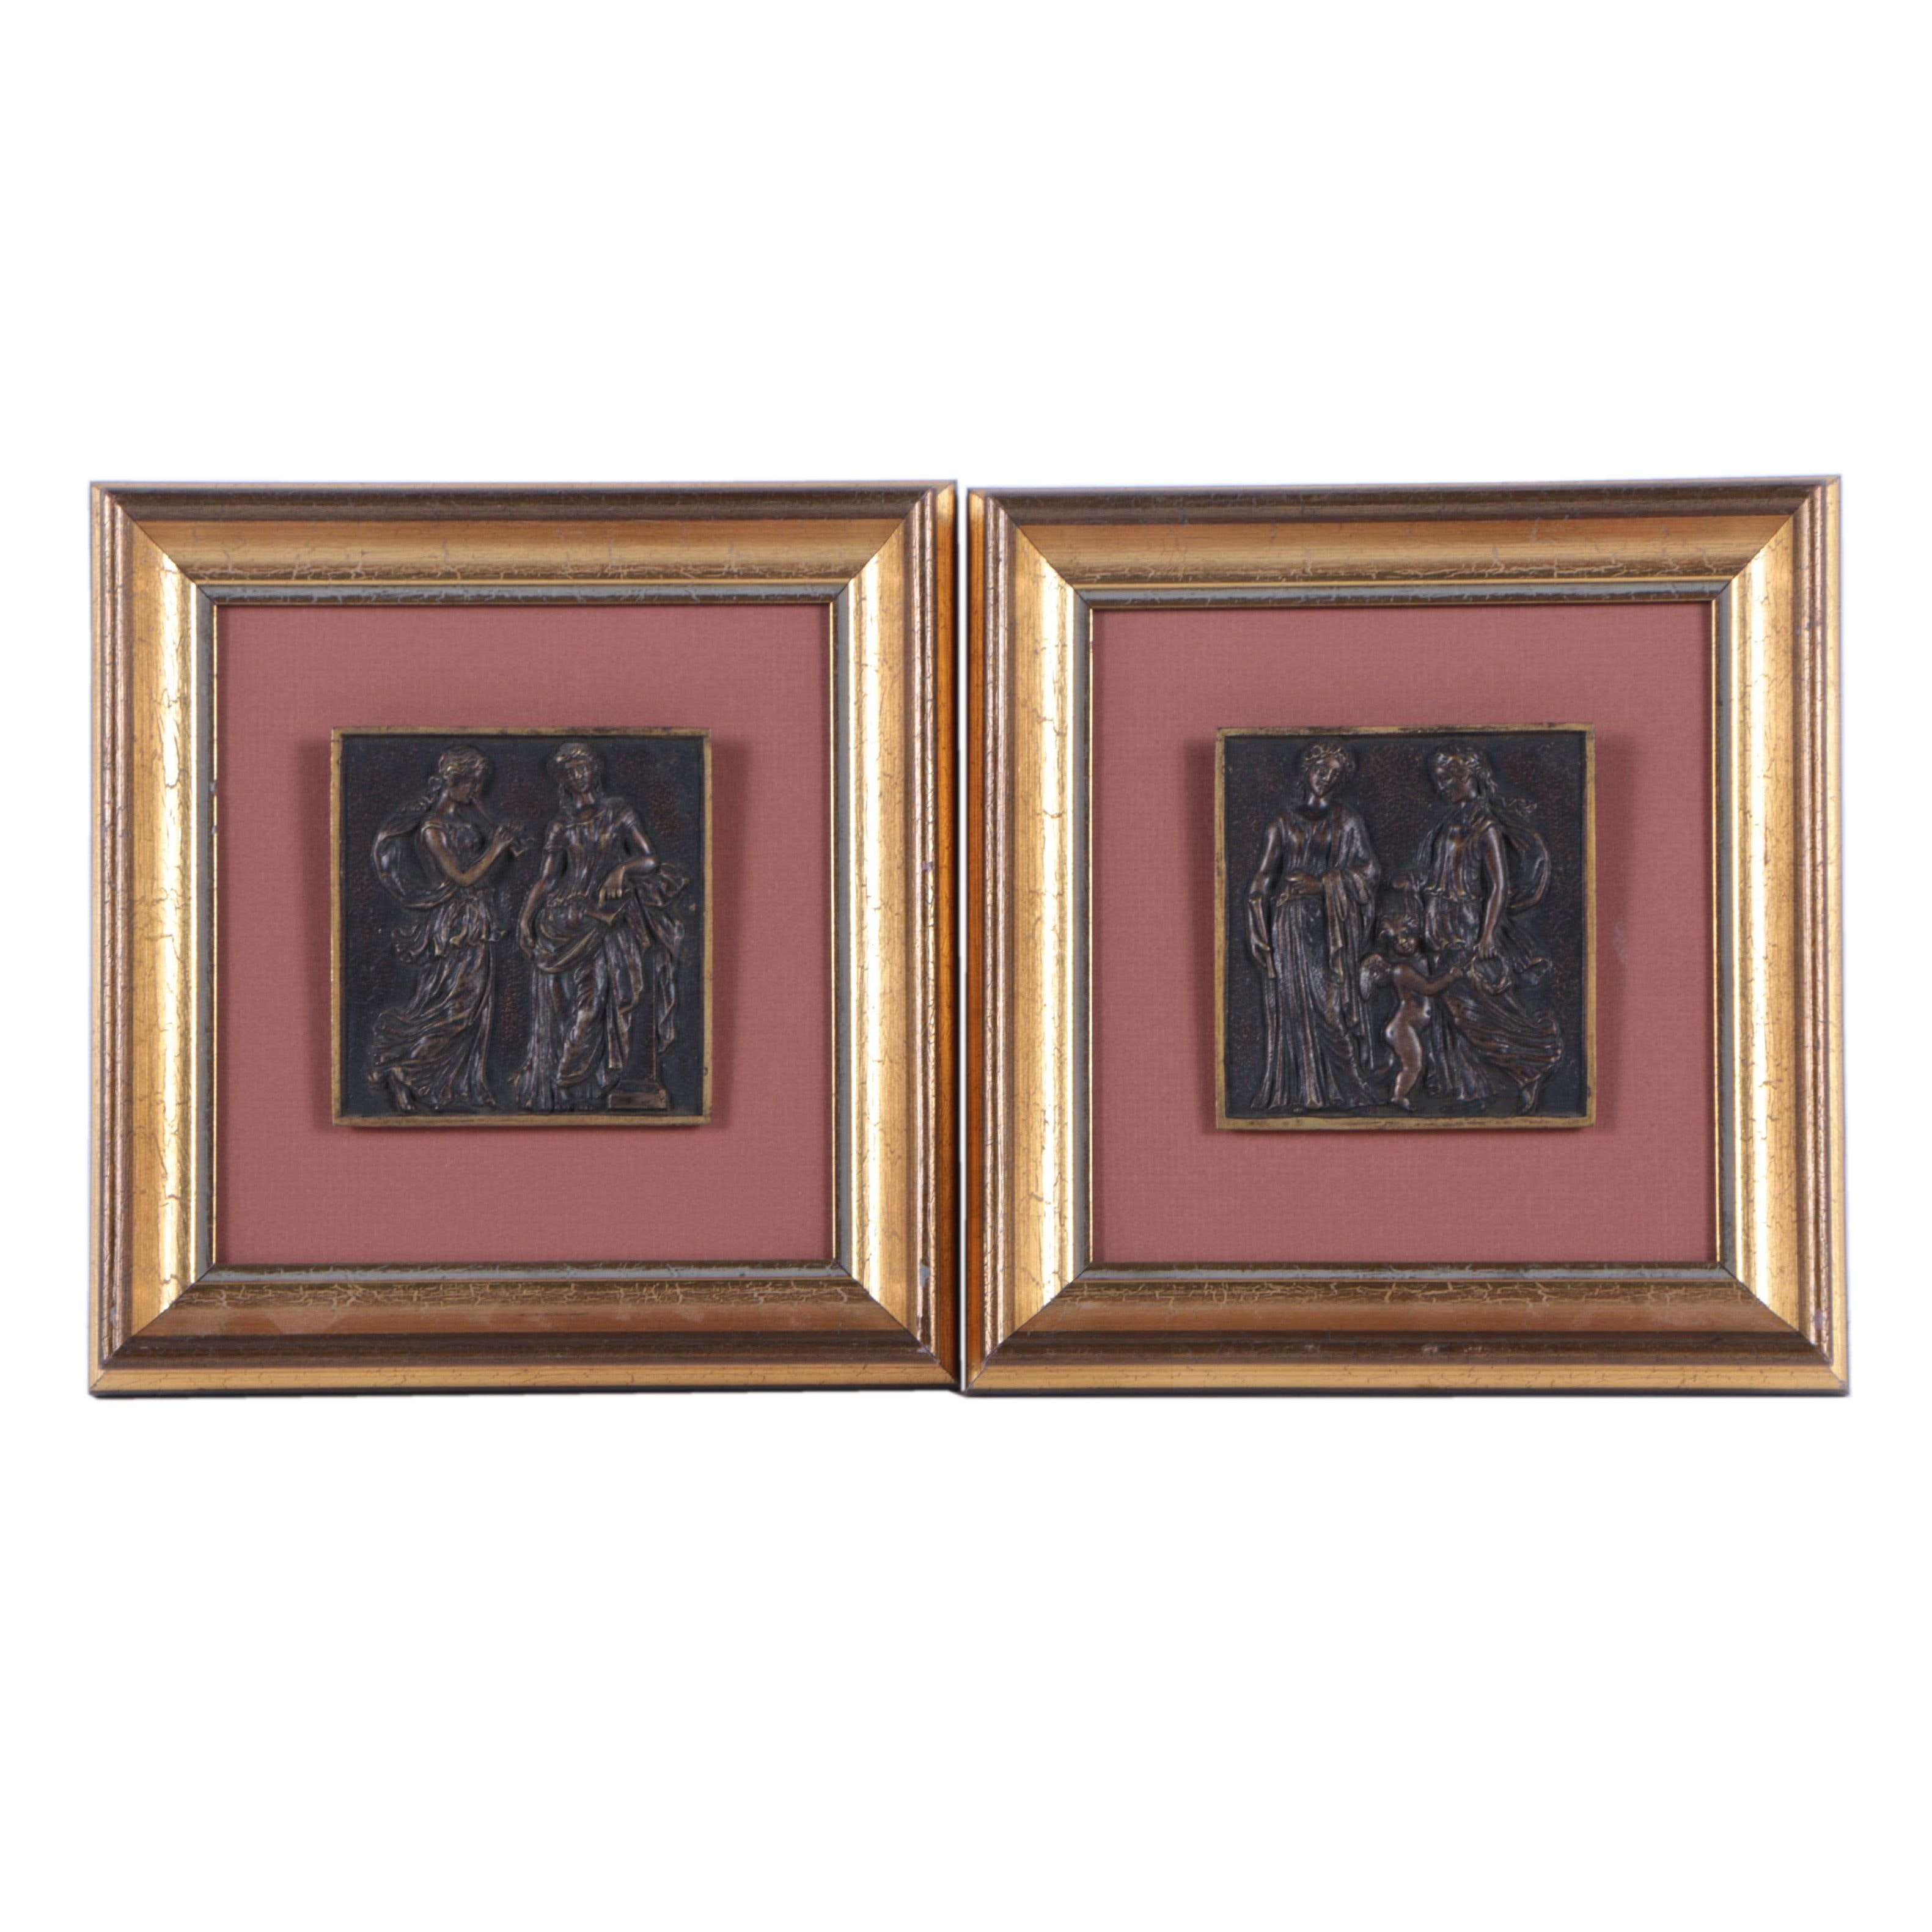 Framed Metal Relief Tiles of Greco-Roman Style Women